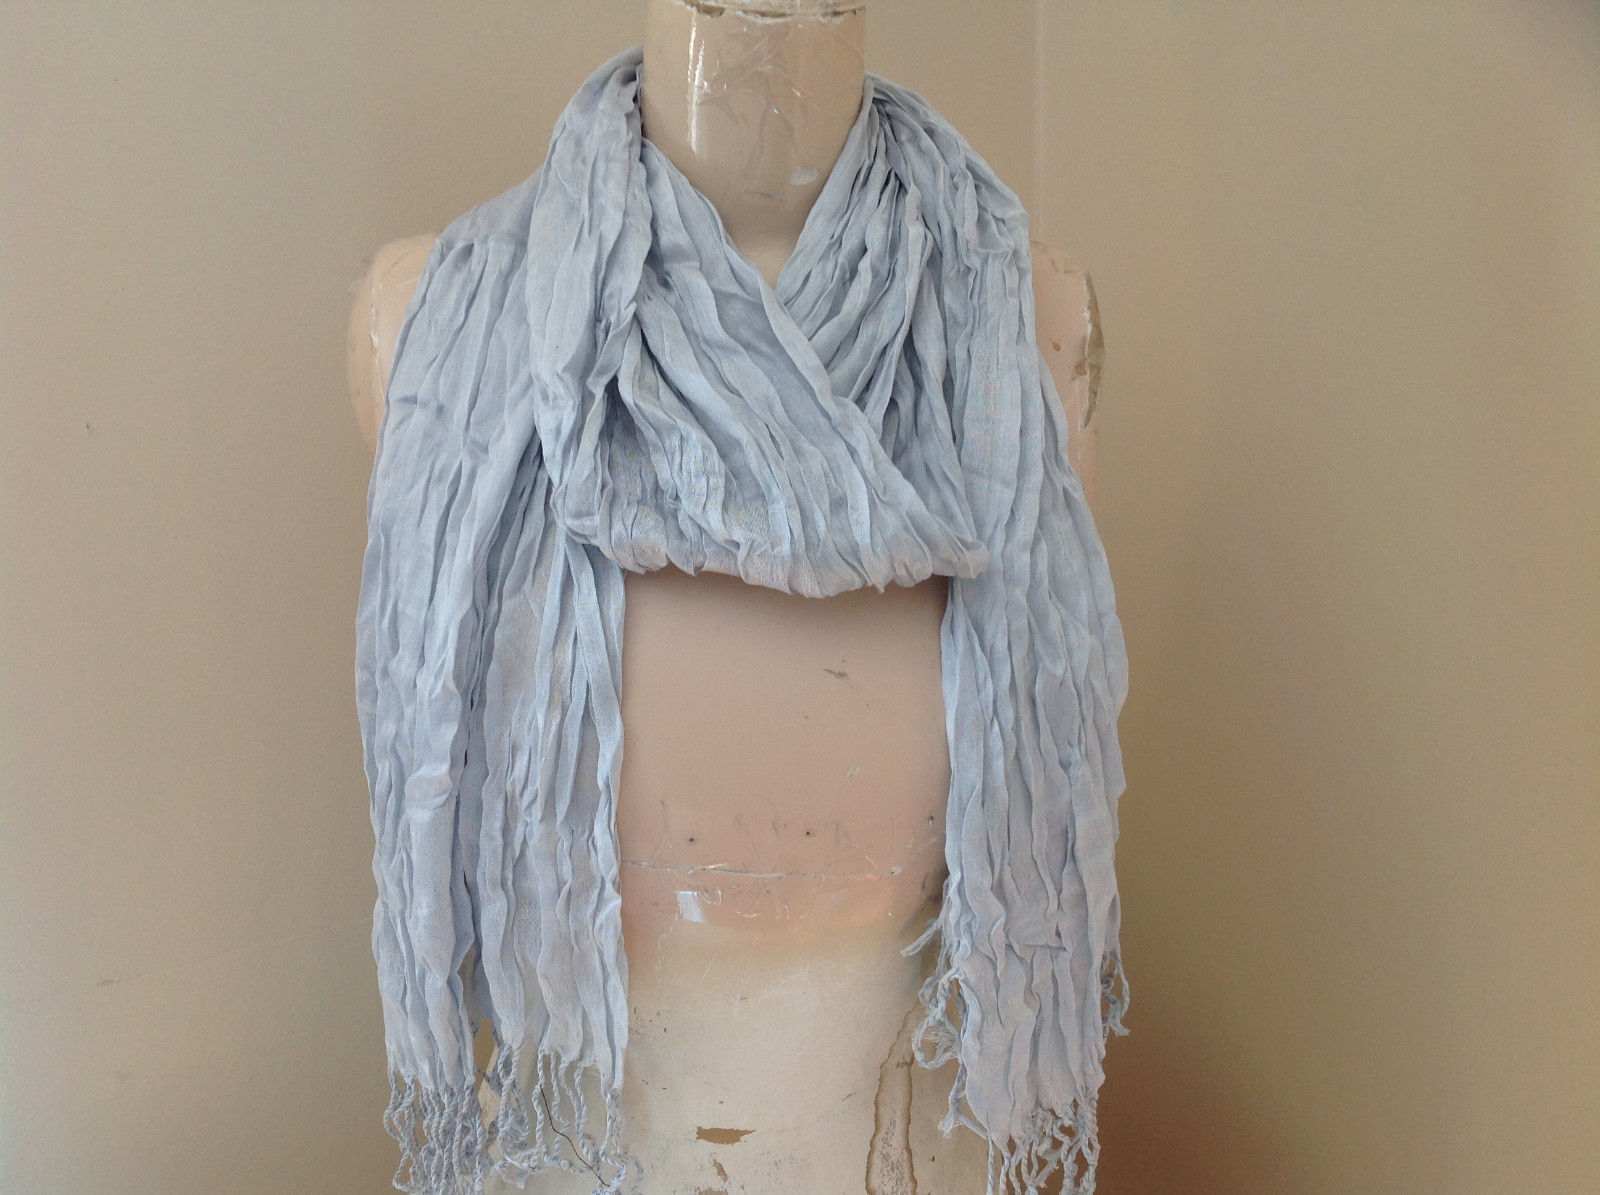 Silk Cotton Blend Heather Gray Scrunched Style Tasseled Scarf TAGS ATTACHED